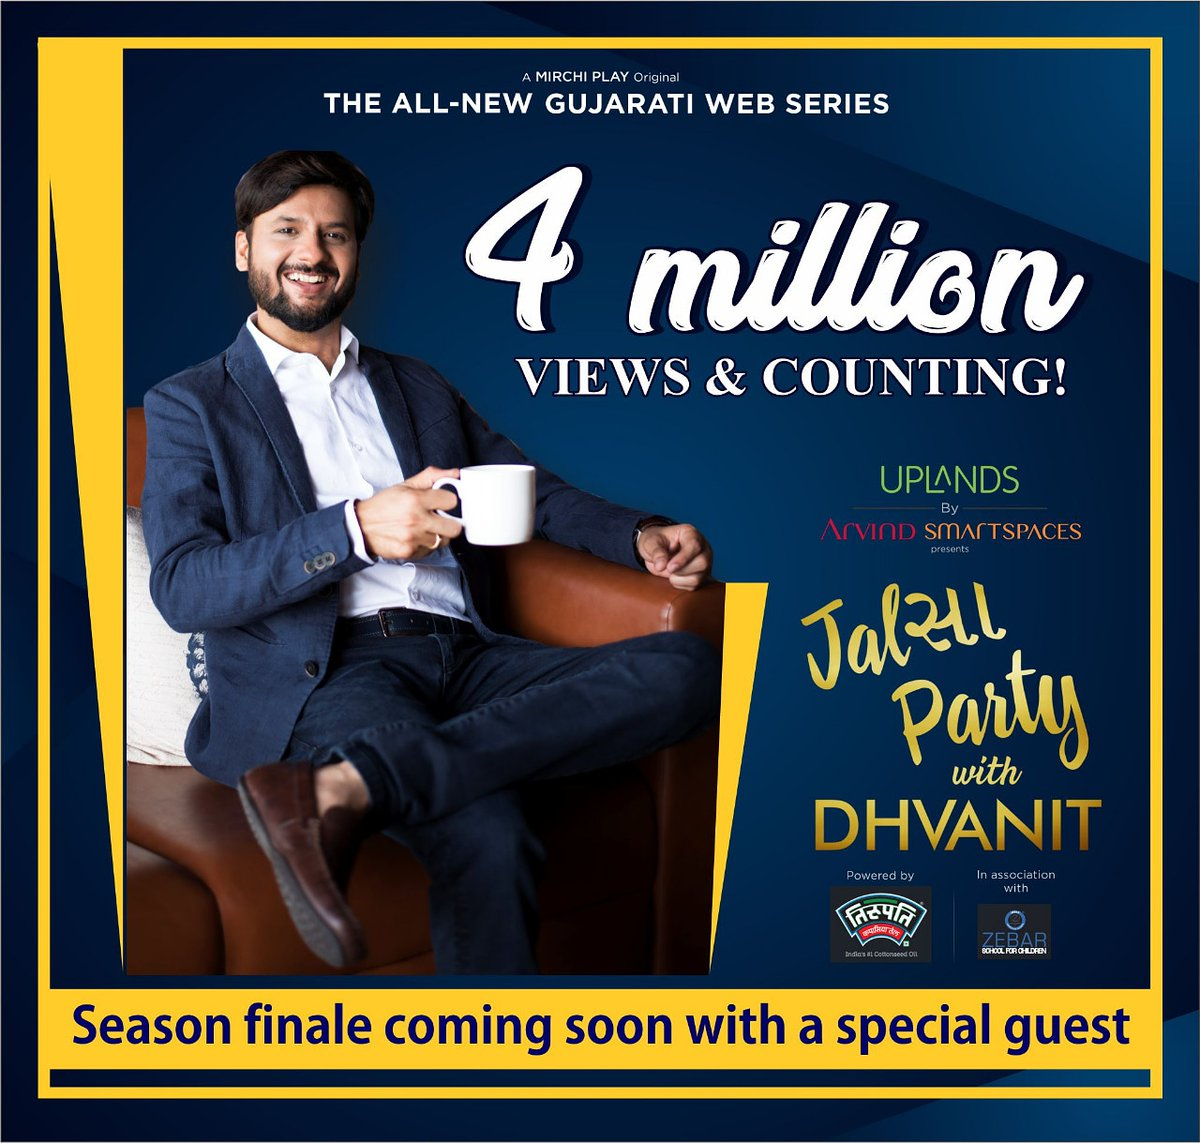 Thank you so much for your over whelming response to #jalsapartywithdhvanit Season finale episode coming up next week #jalsaparty #dhvanit #rjdhvanit #webseries #gujarati #trending https://t.co/DNna7KuRTb